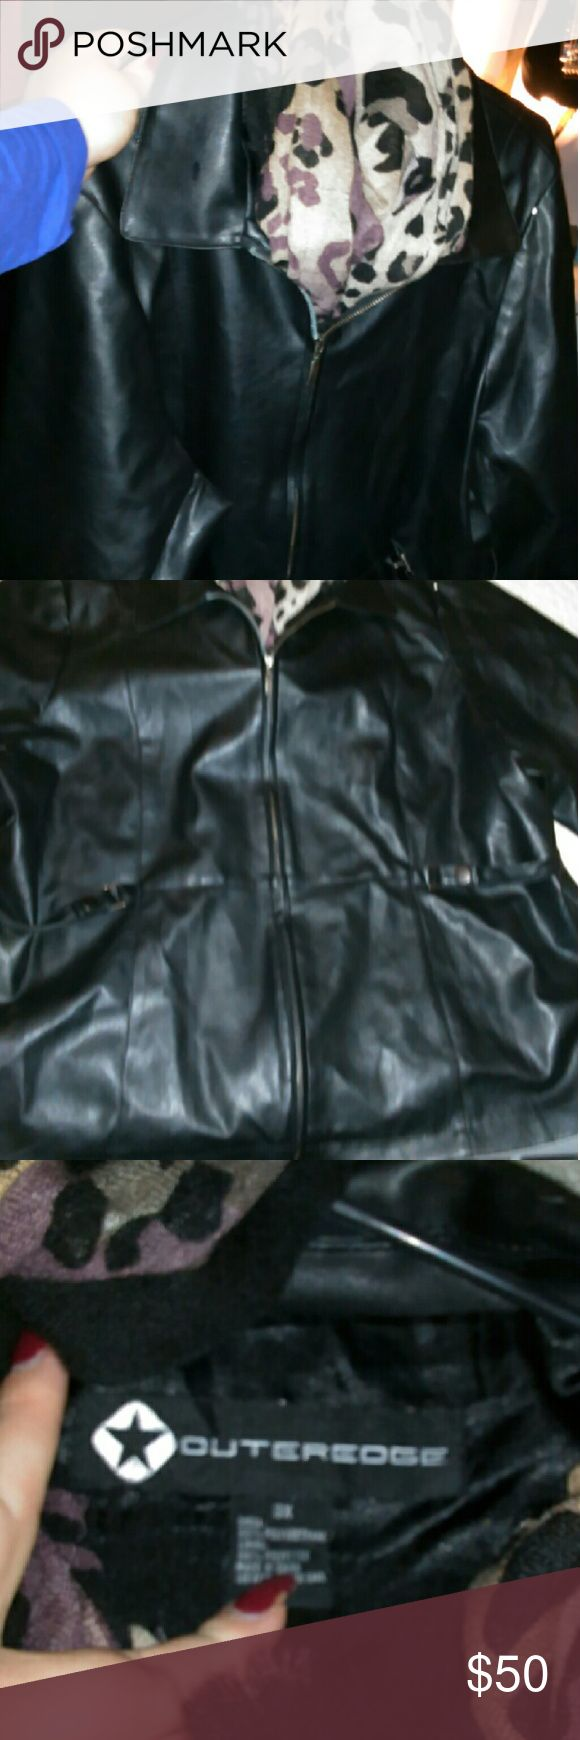 Outeredge womens leather plus size coat Nice leather coat size 3? I will also throw in the scarf if interested outeredge Jackets & Coats